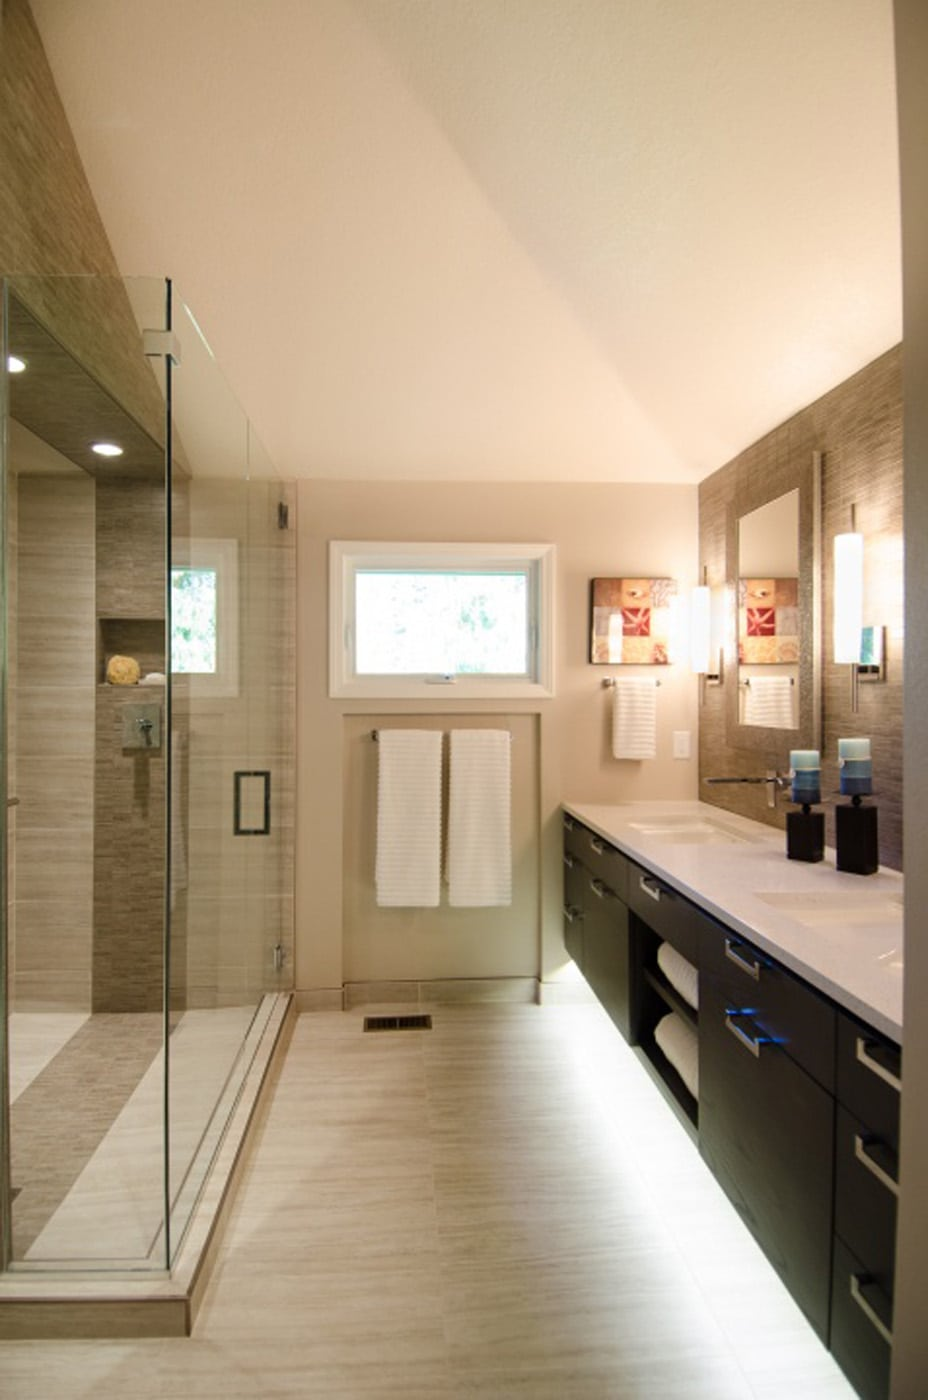 Pangaea interior design portland interior design for Modern master bathroom